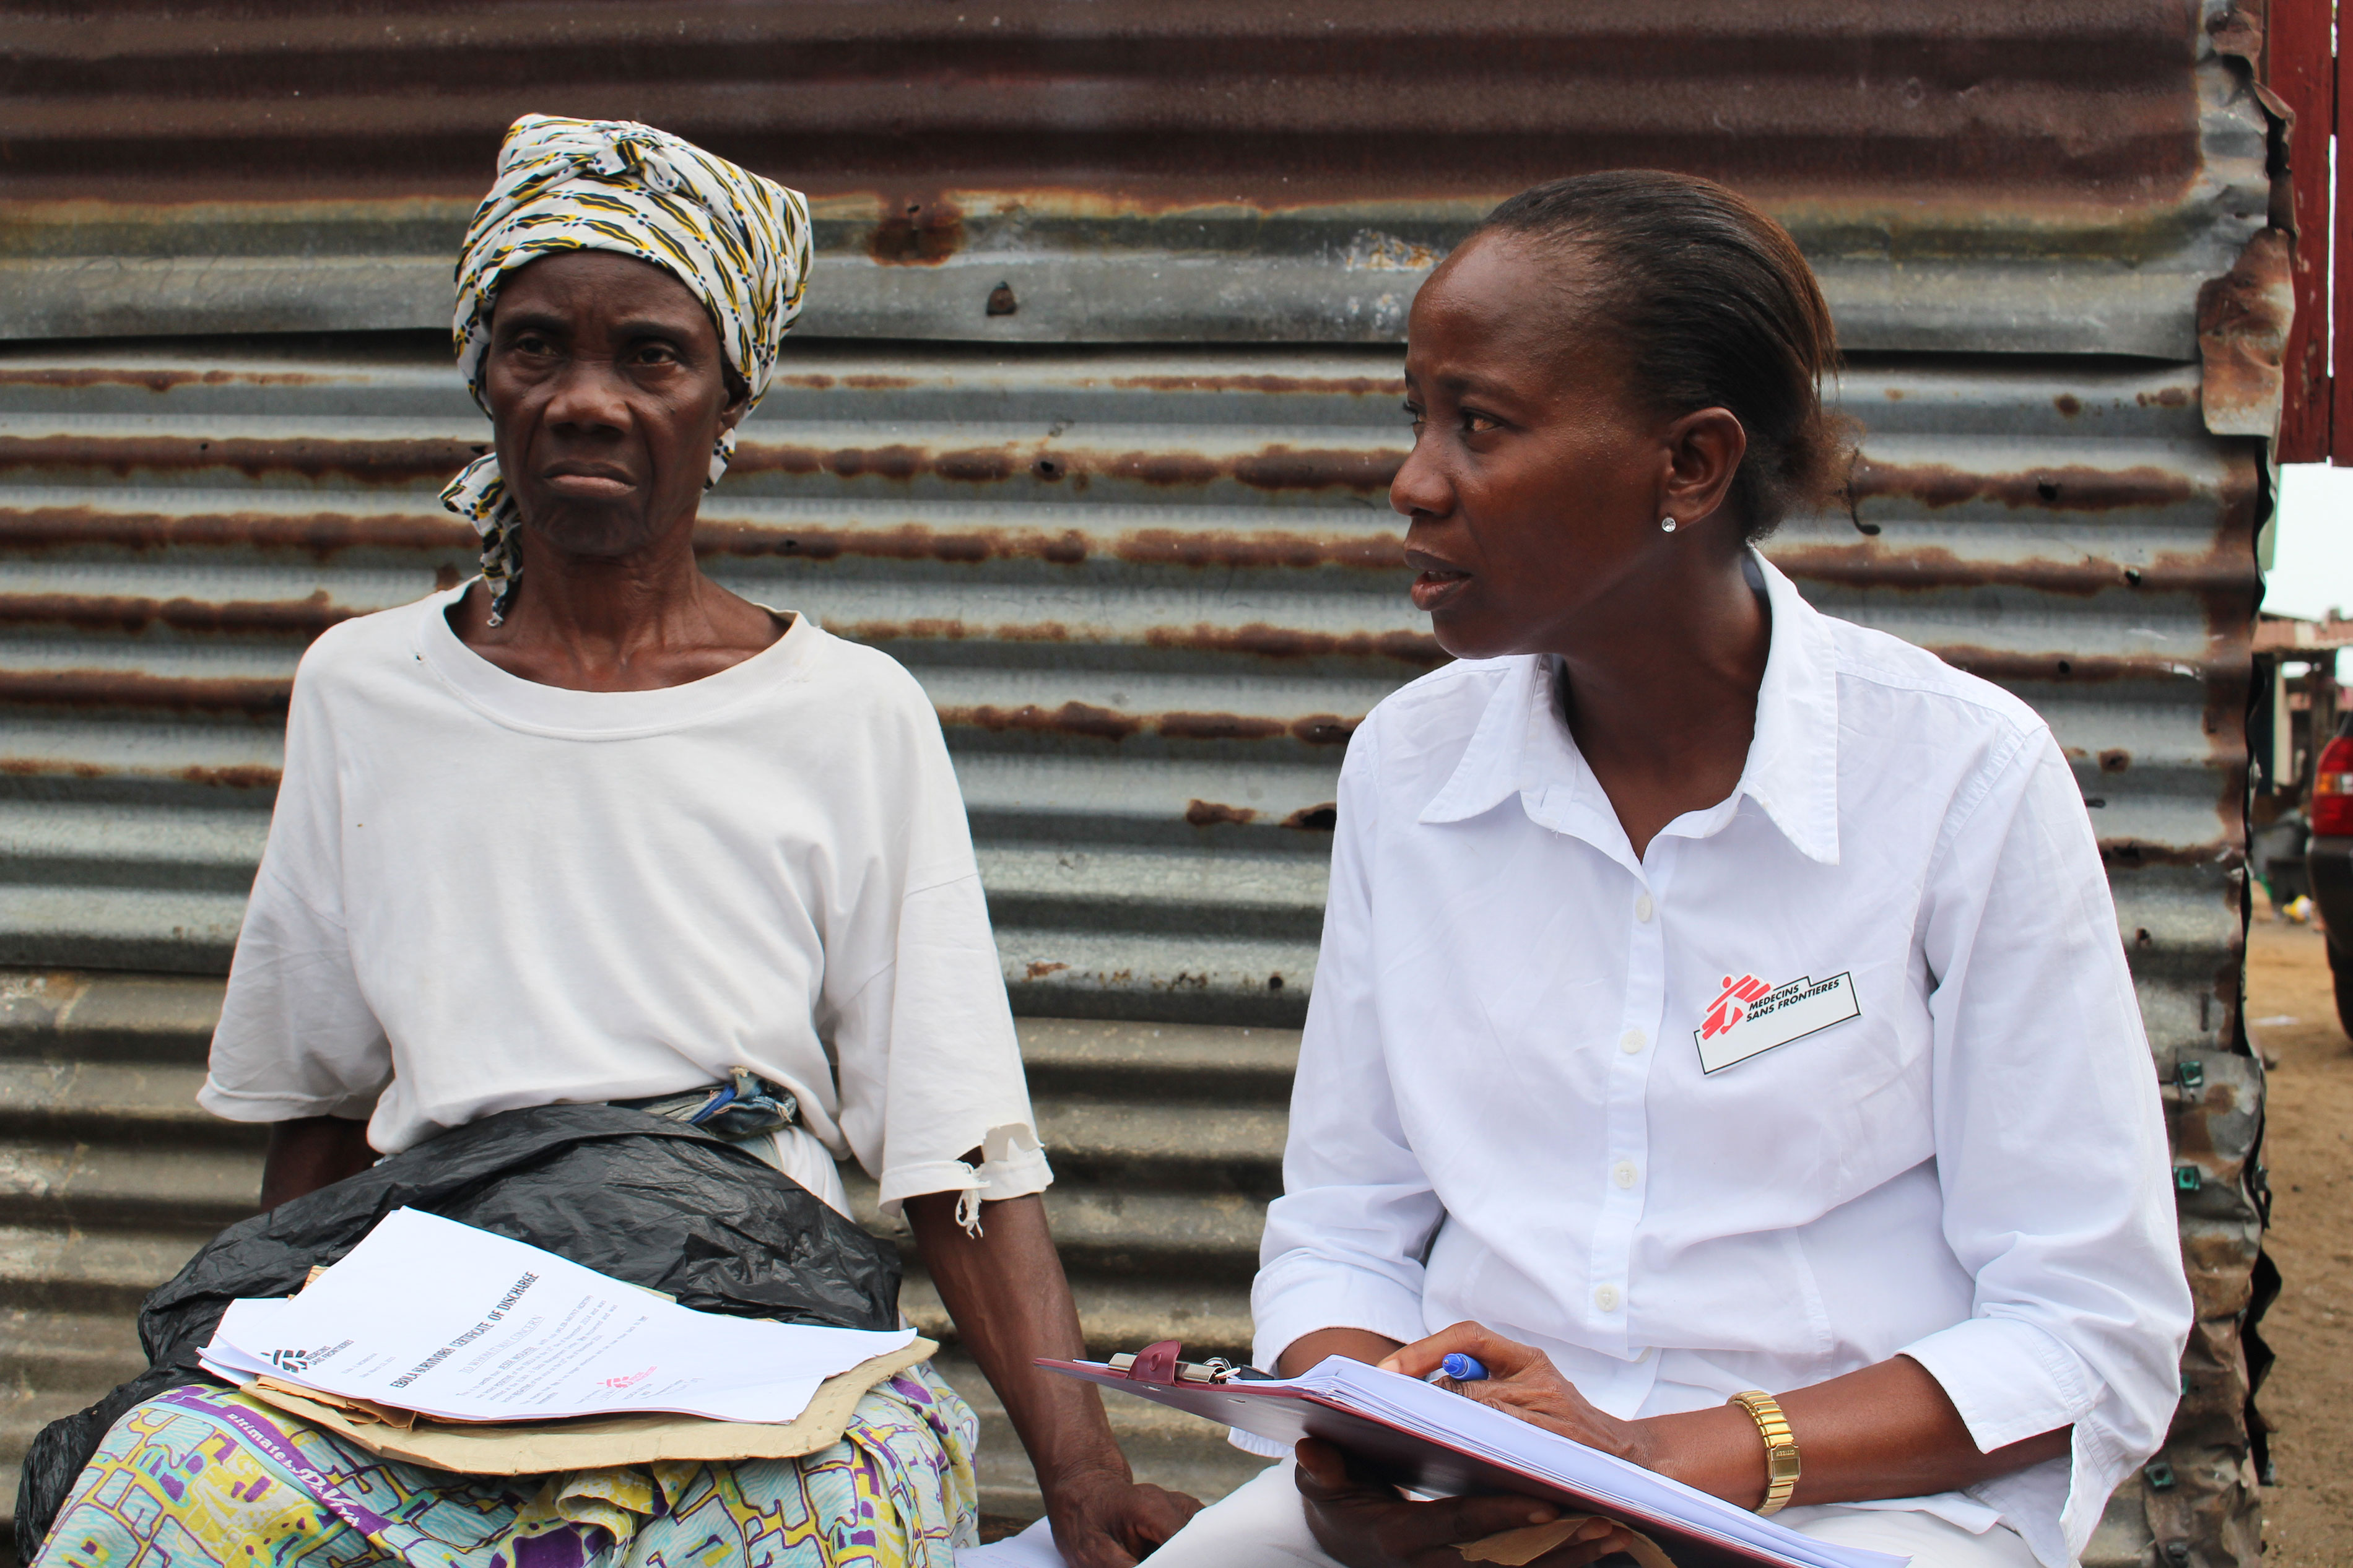 Ebola survivor, Jesse Wolatee, 65yrs, explains to an MSF Ebola survivor clinic staff post-Ebola syndrome she is experiencing.